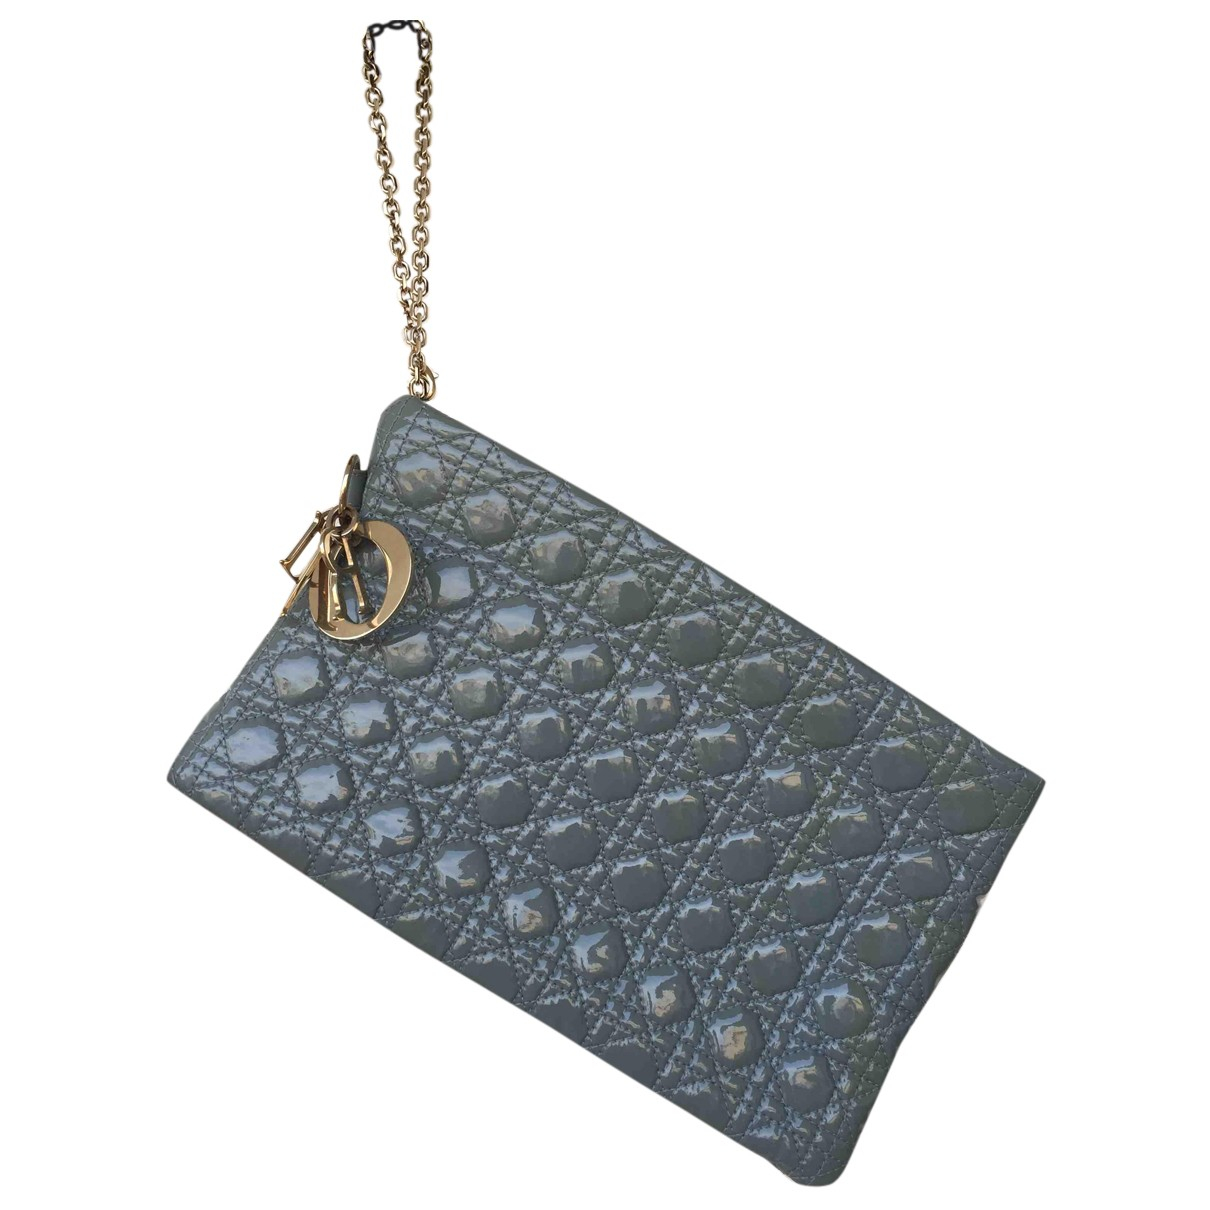 Dior N Patent leather Clutch bag for Women N